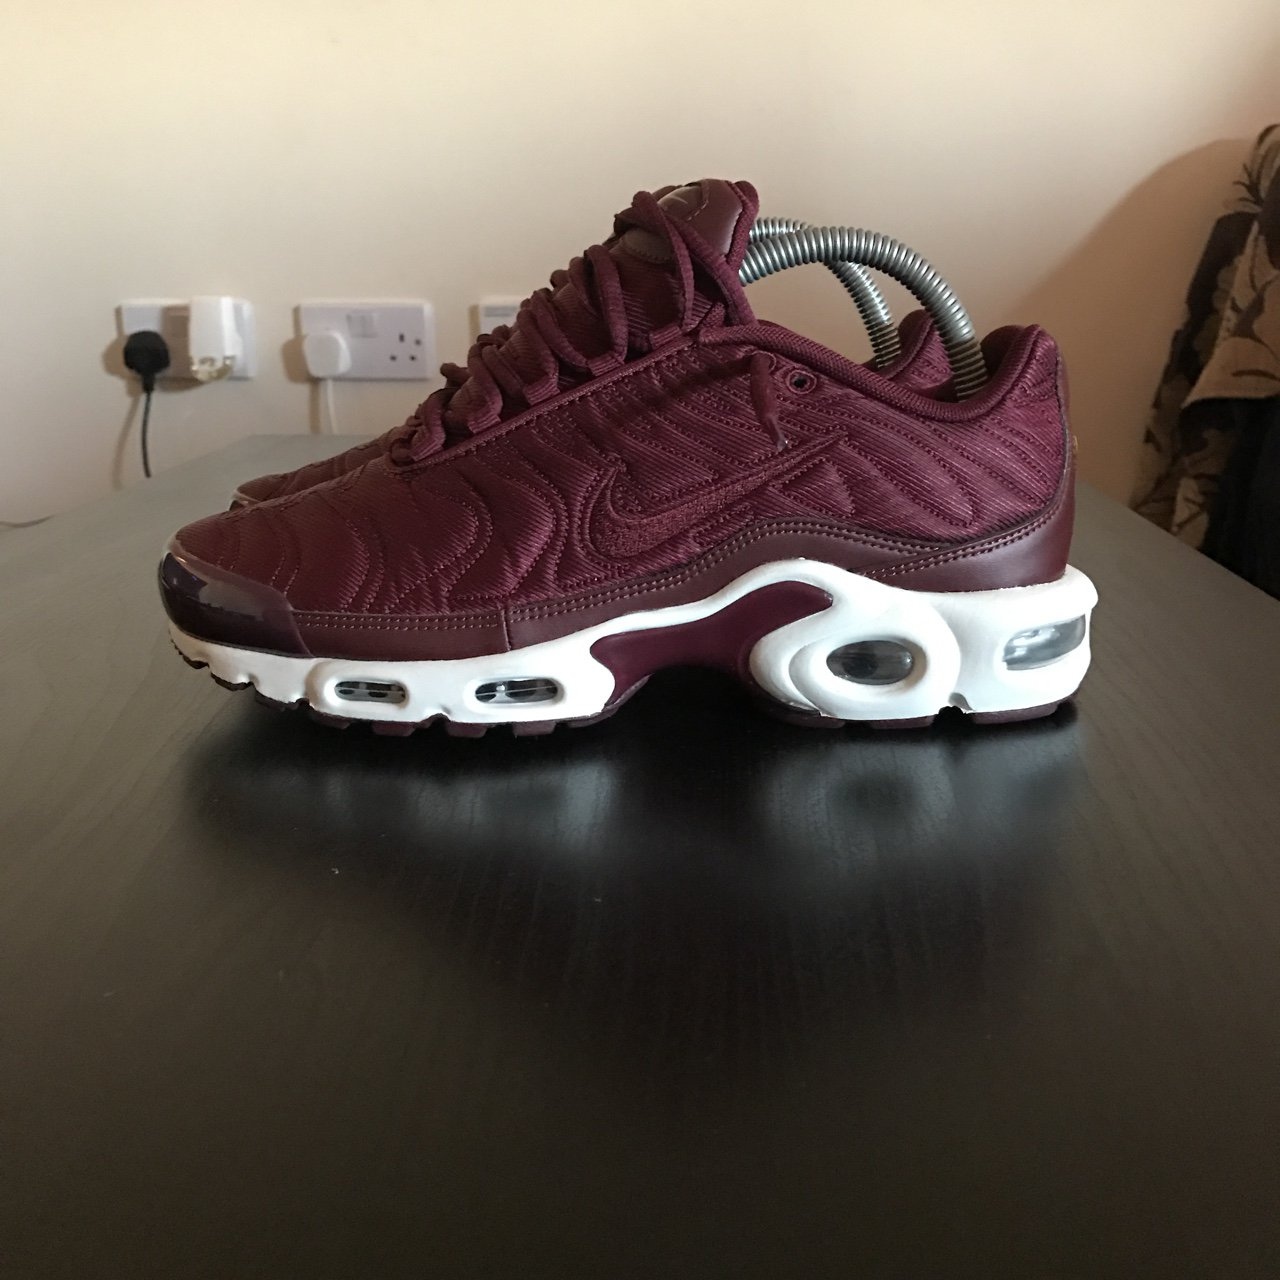 a096aa8a11 @zackseddon. 2 years ago. Manchester, UK. Nike Air Max Plus TN - Burgundy  ...